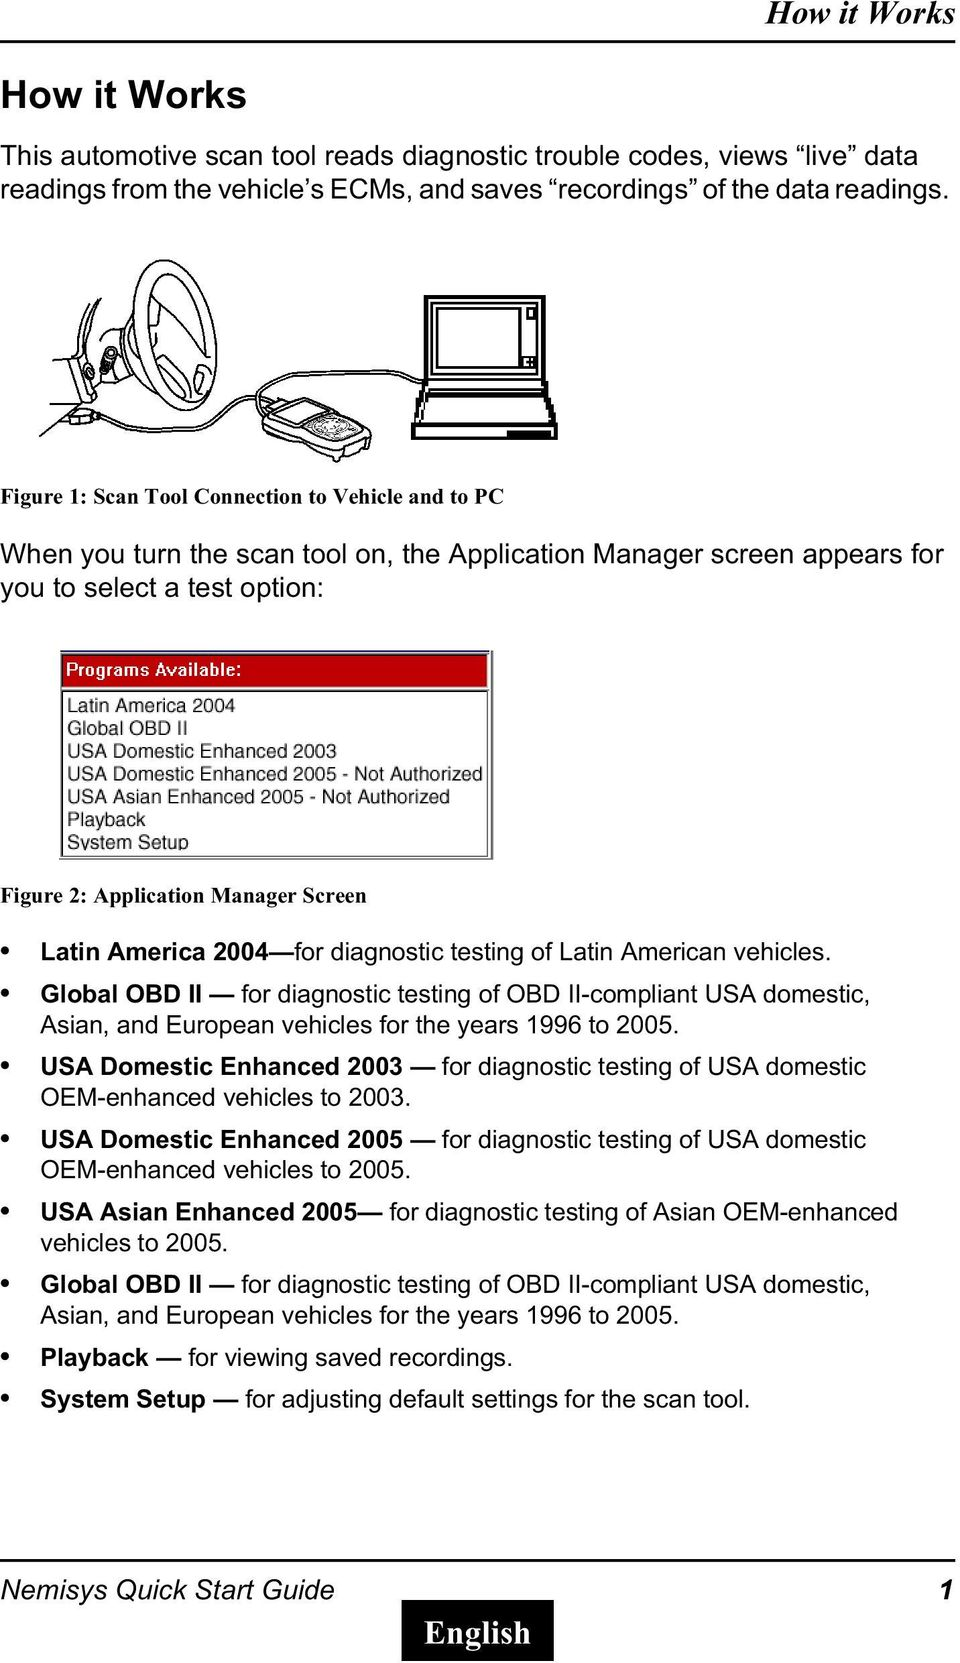 America 2004 for diagnostic testing of Latin American vehicles. Global OBD II for diagnostic testing of OBD II-compliant USA domestic, Asian, and European vehicles for the years 1996 to 2005.